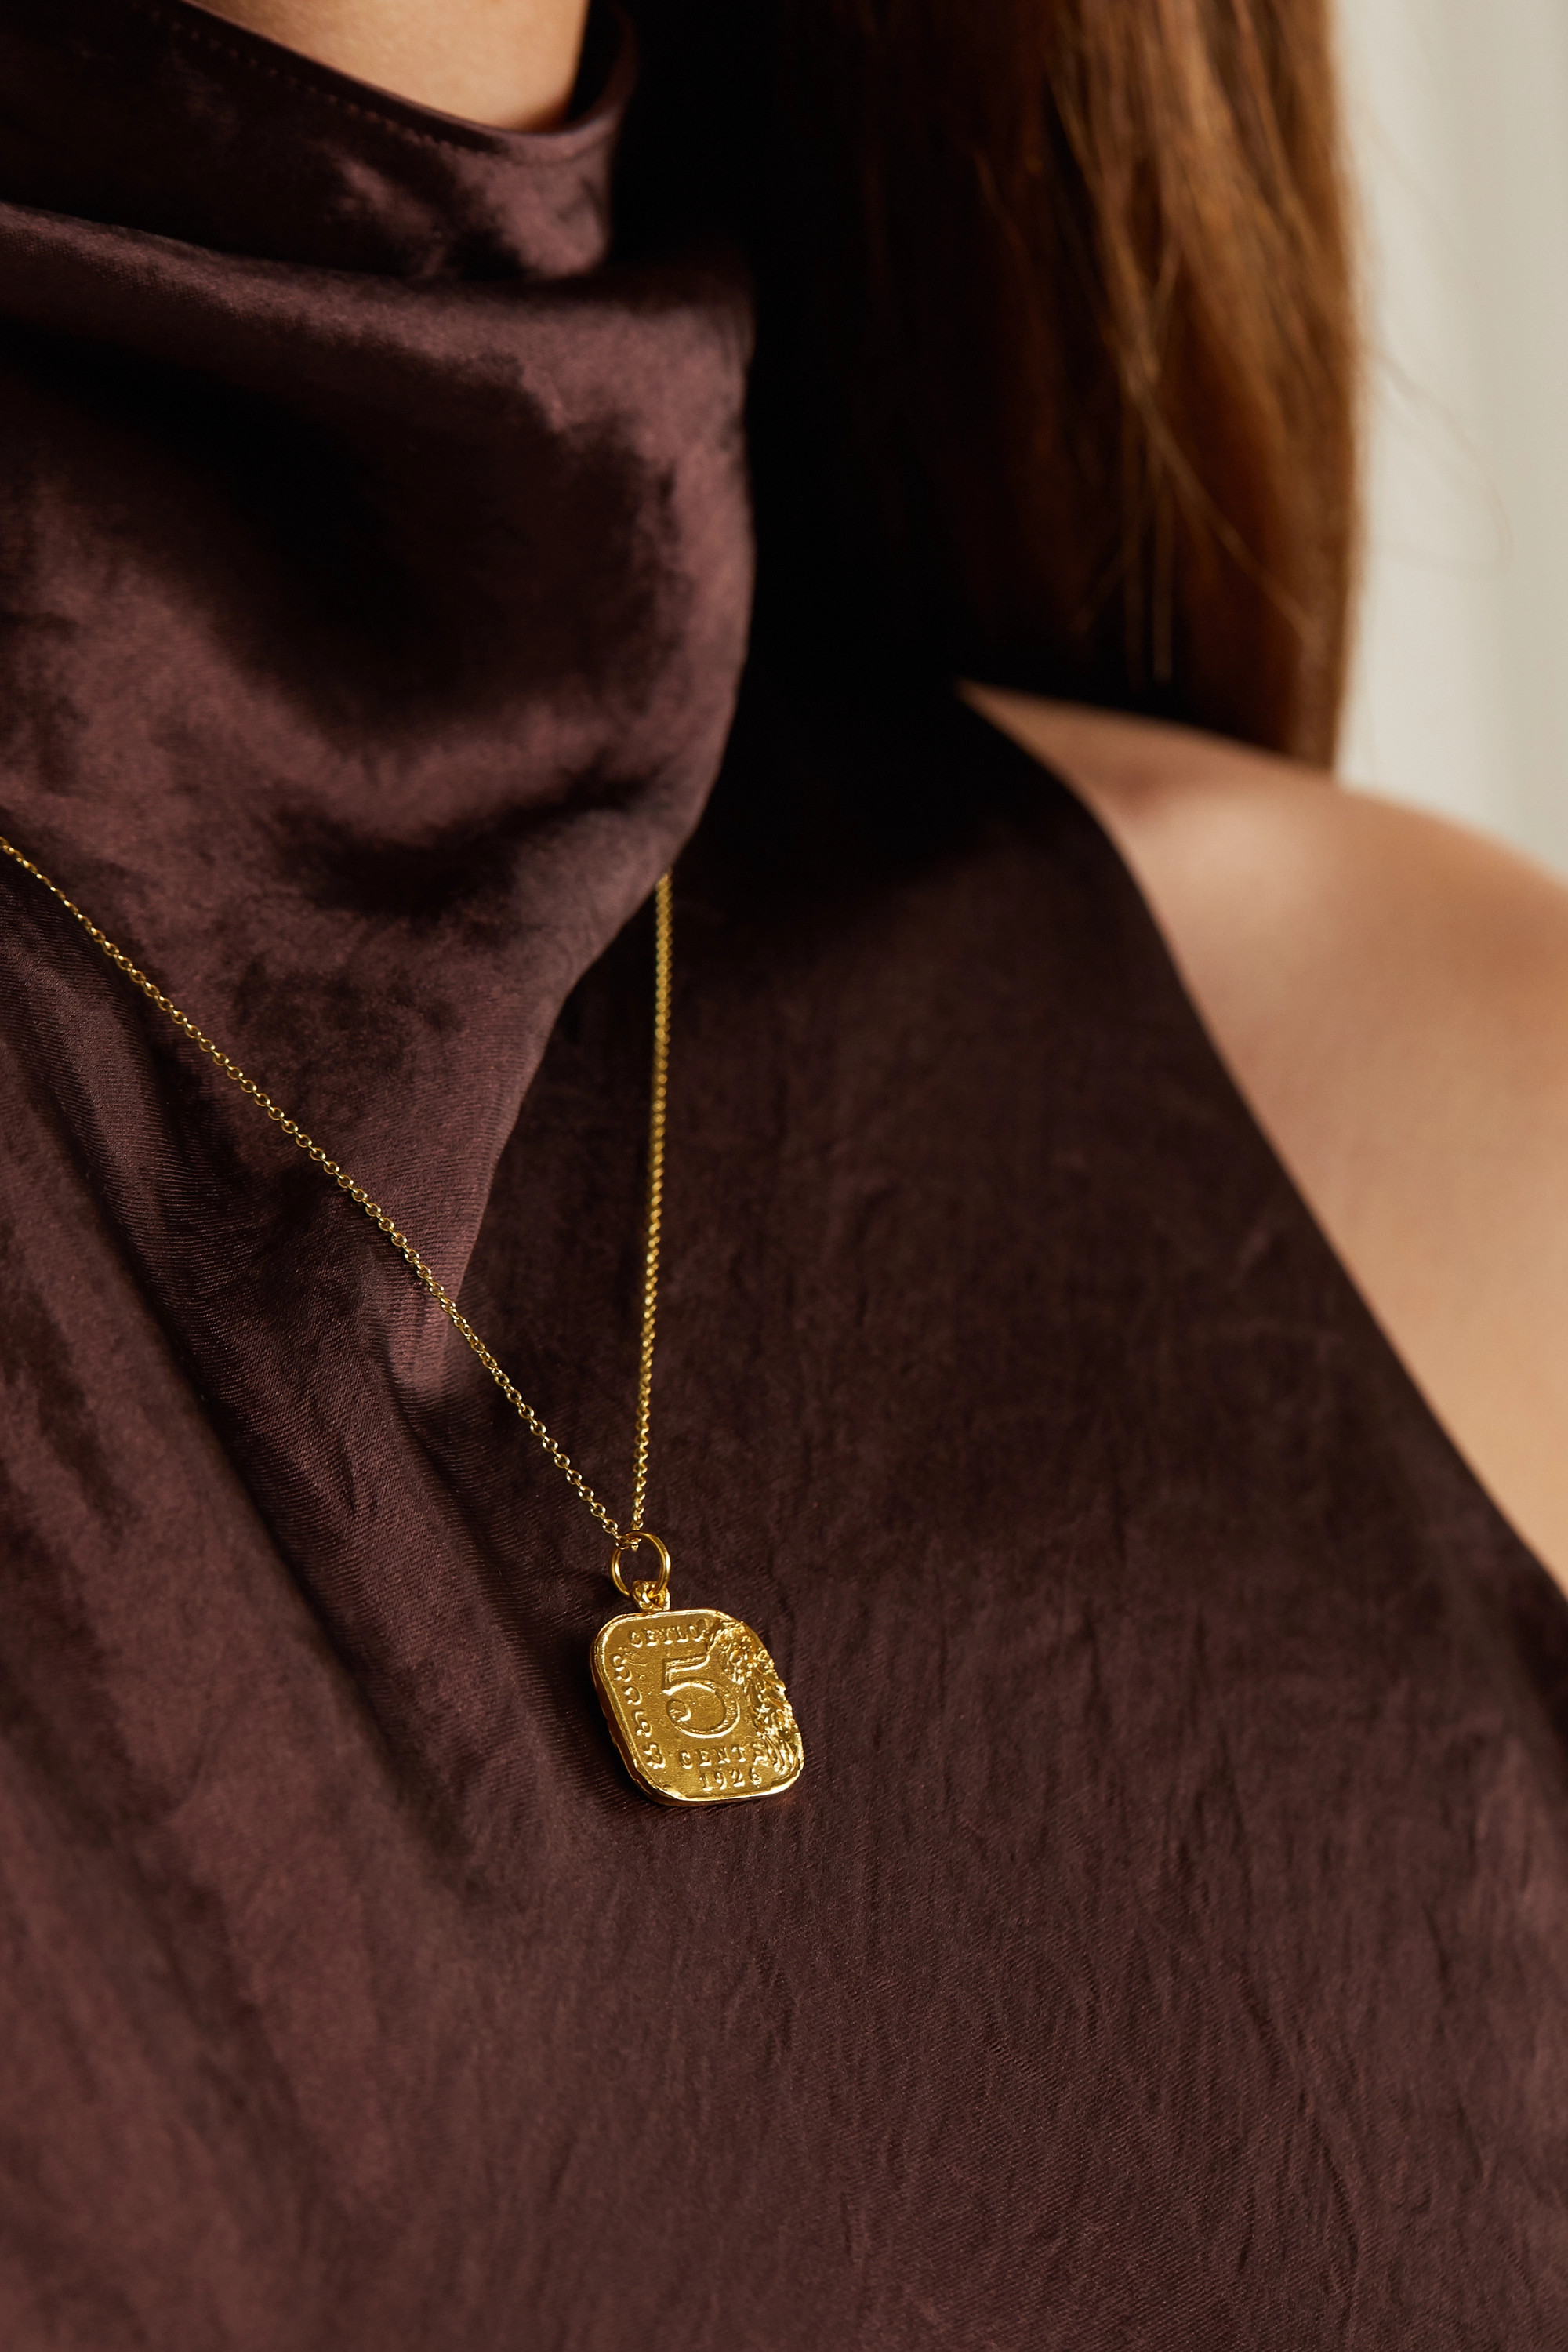 Alighieri The Infernal Storm gold-plated necklace